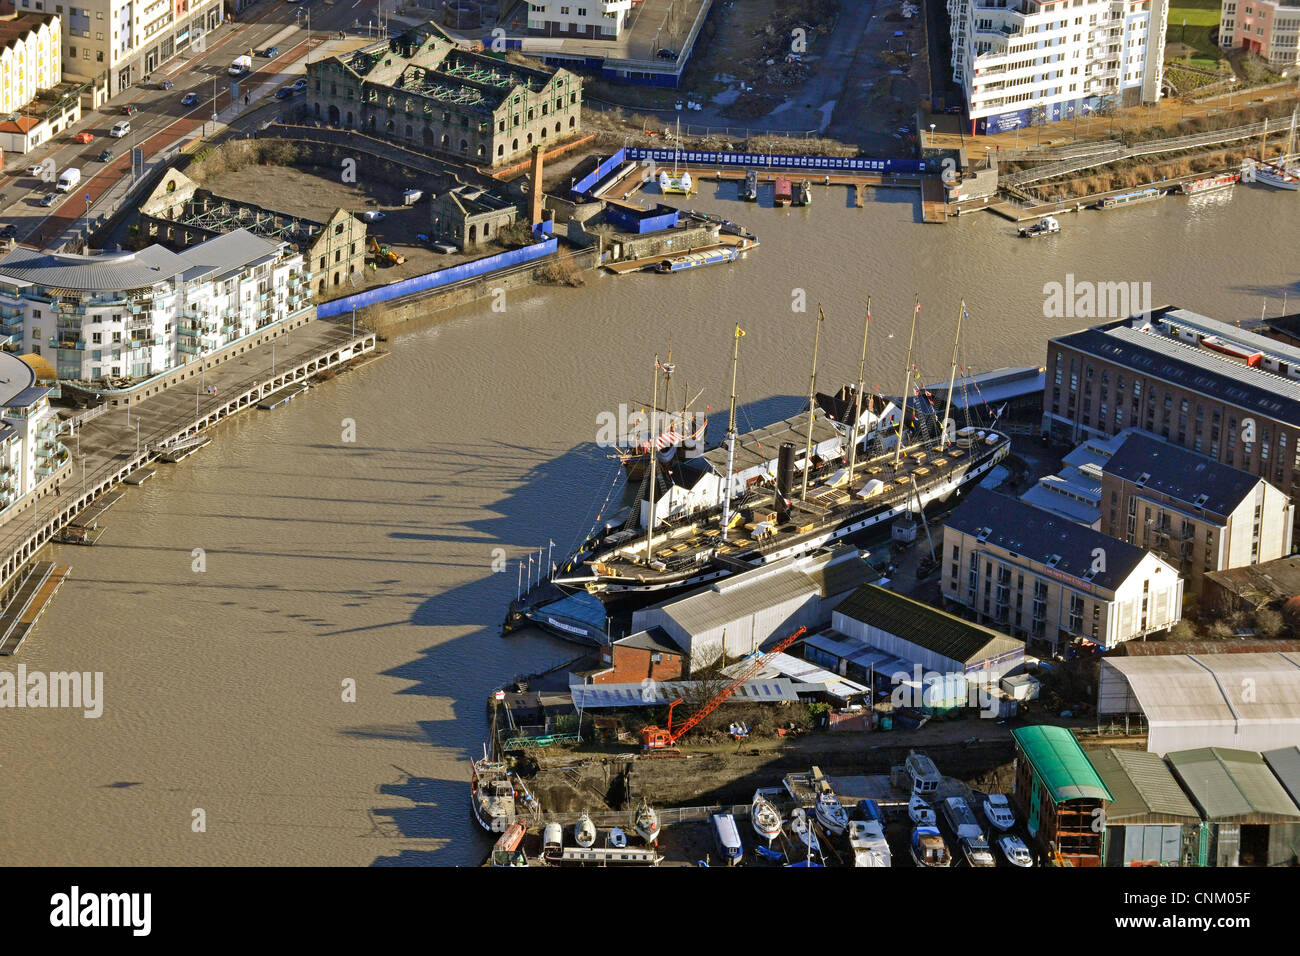 Aerial photograph showing the SS Great Britain moored alongside the River Avon in Bristol - Stock Image